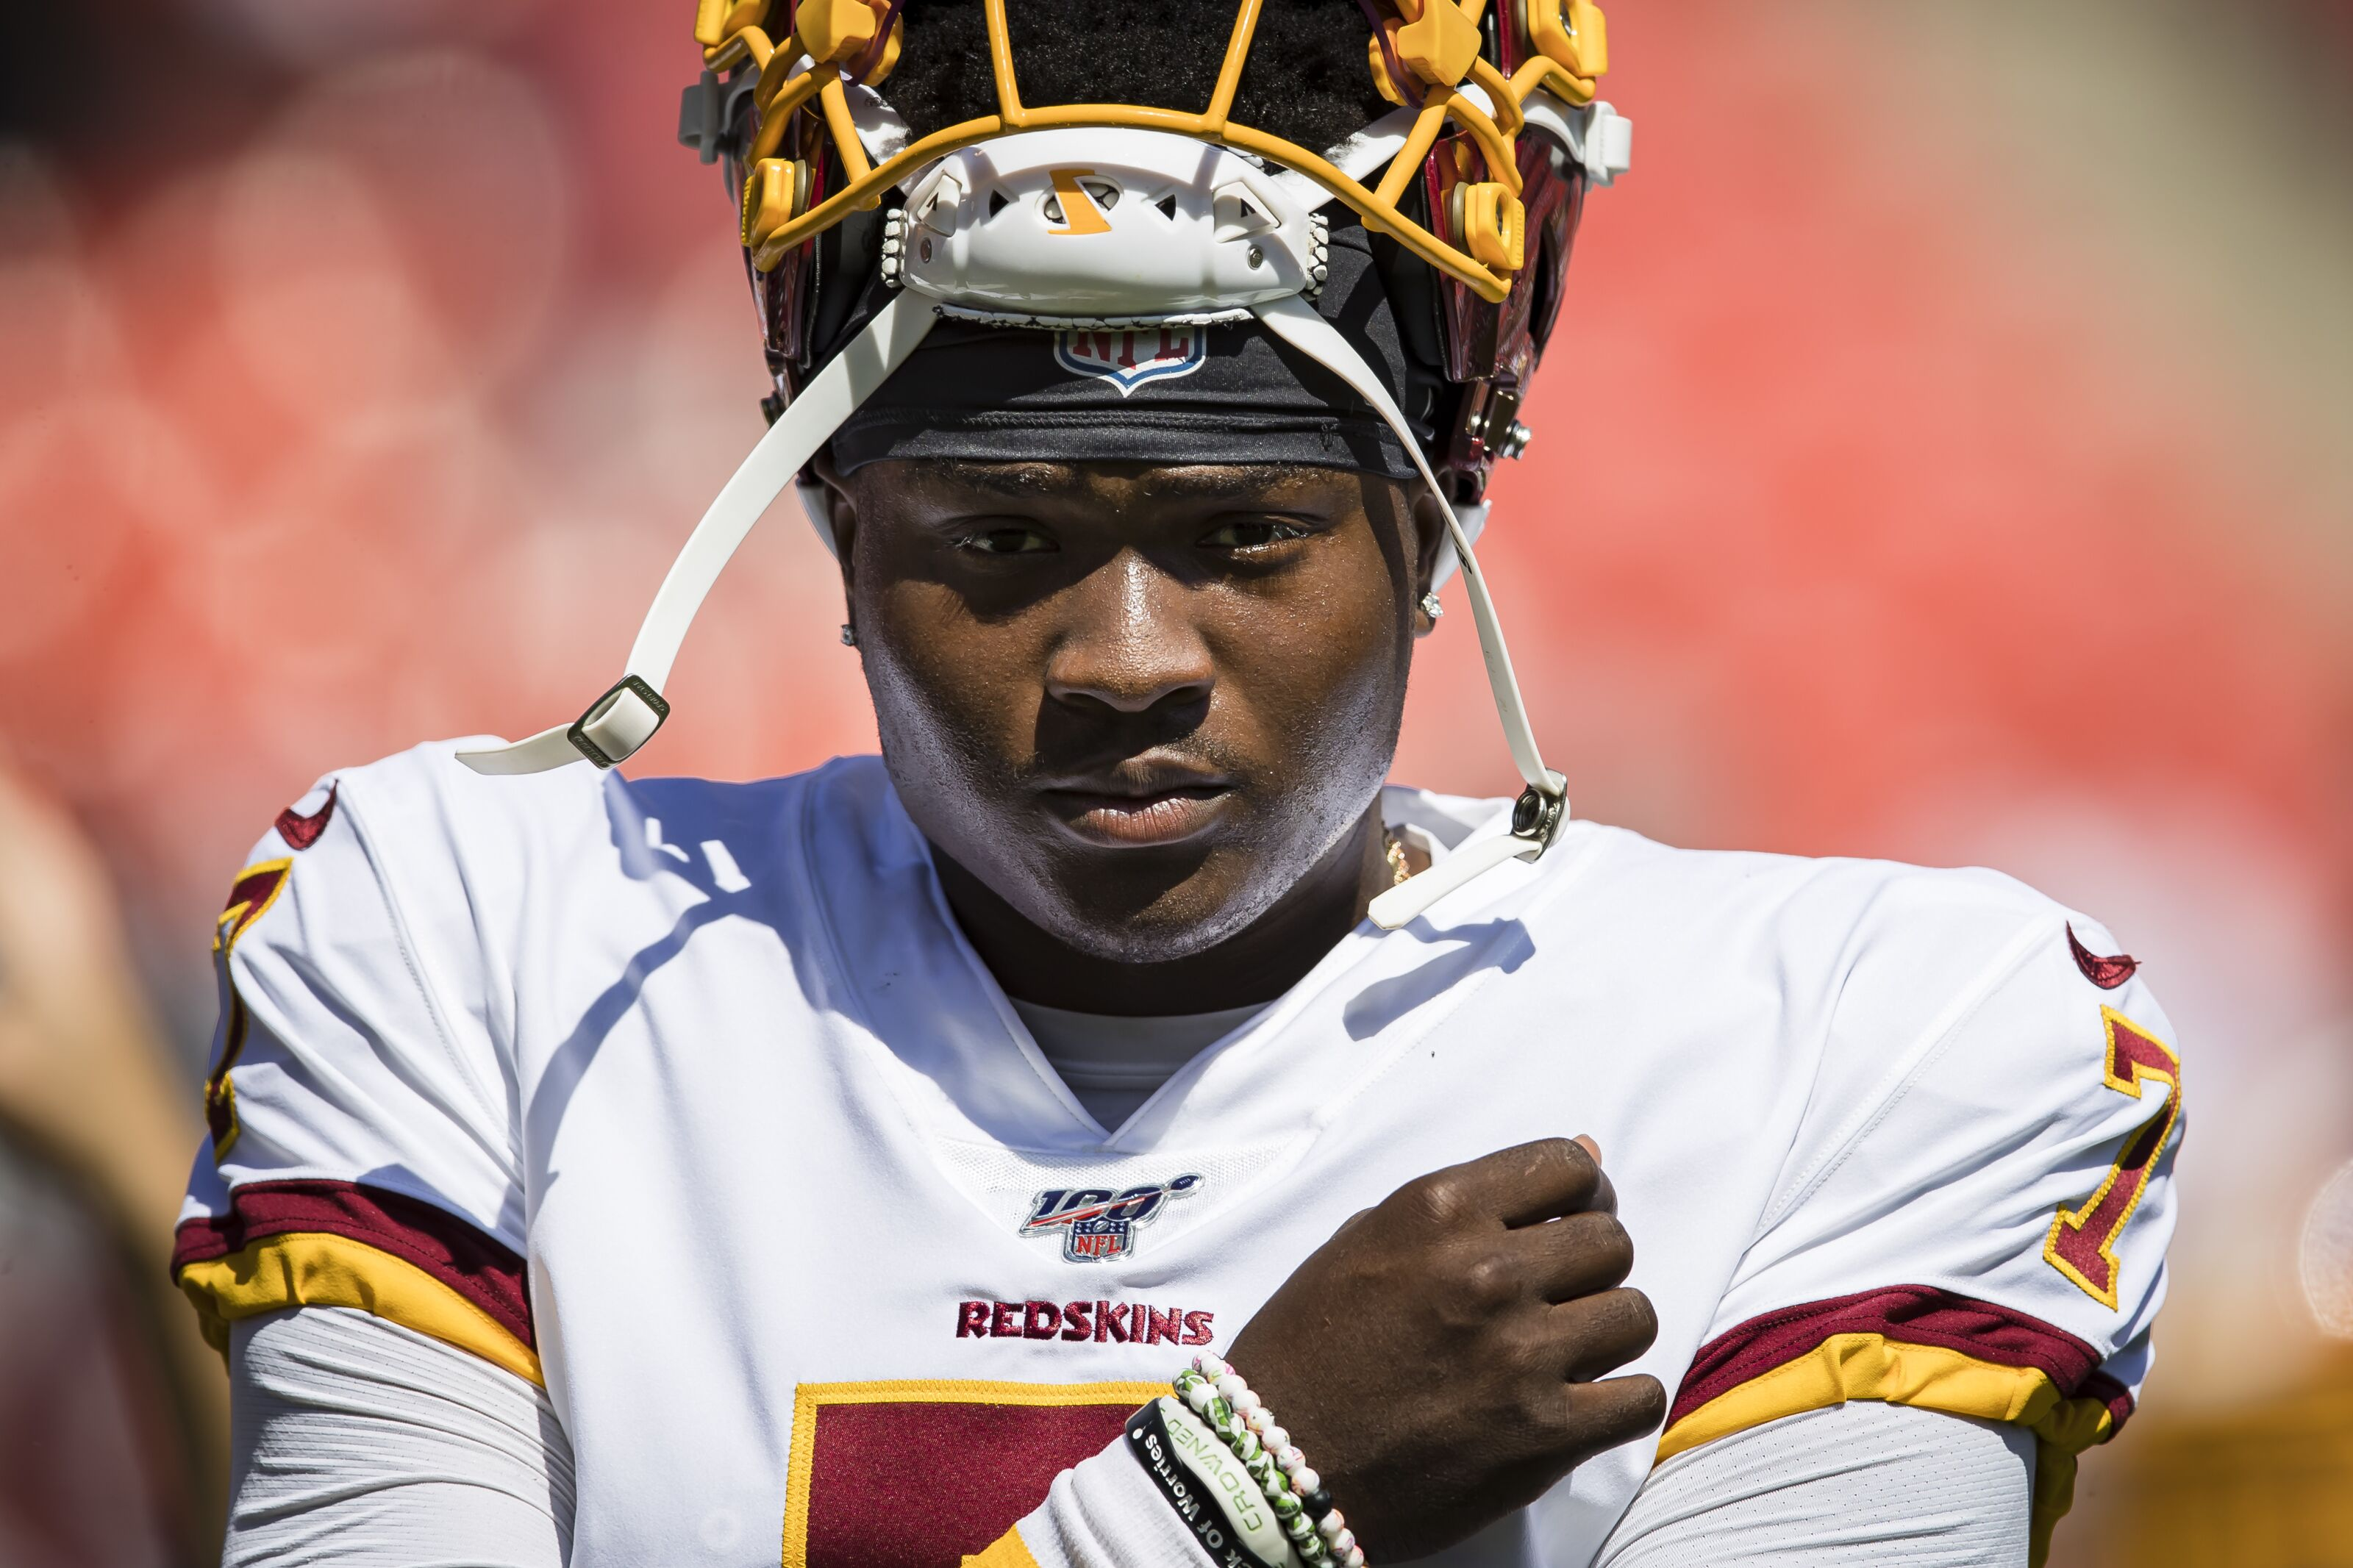 Redskins: While teams change QBs, Dwayne Haskins waits for his shot